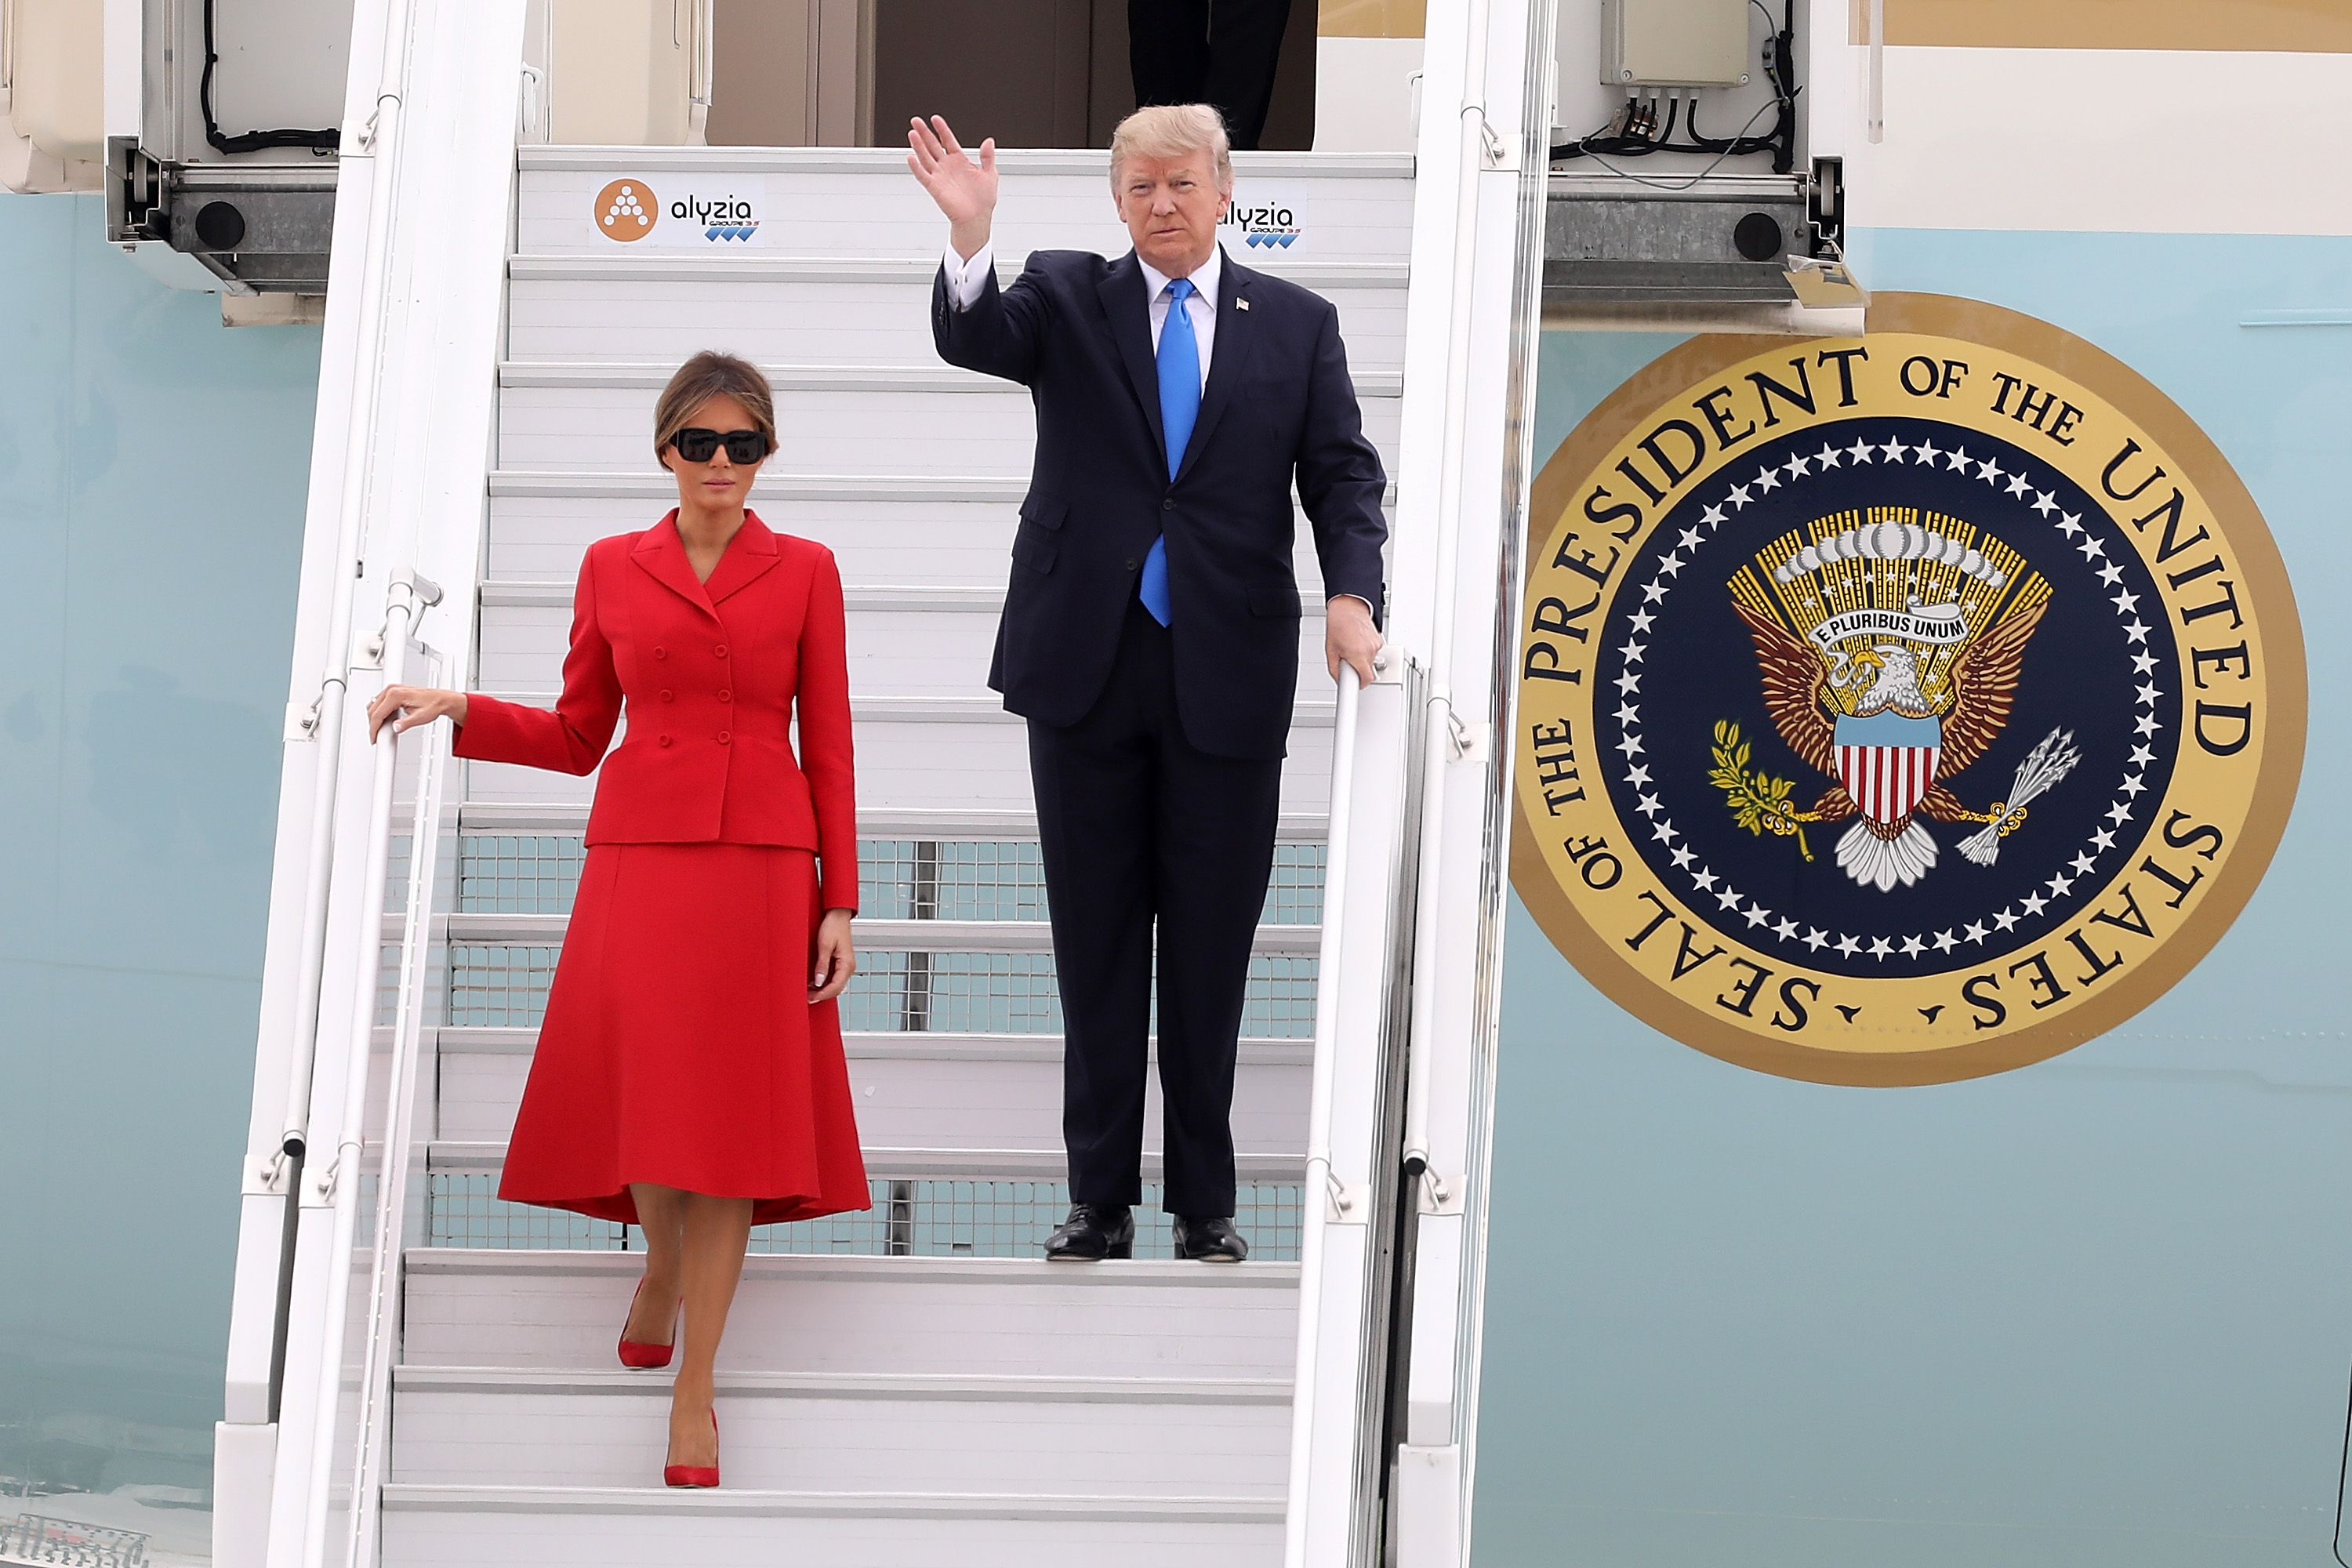 President Donald Trump and First Lady Melania Trump arrive at Orly Airport on July 13, 2017 in Paris, France.